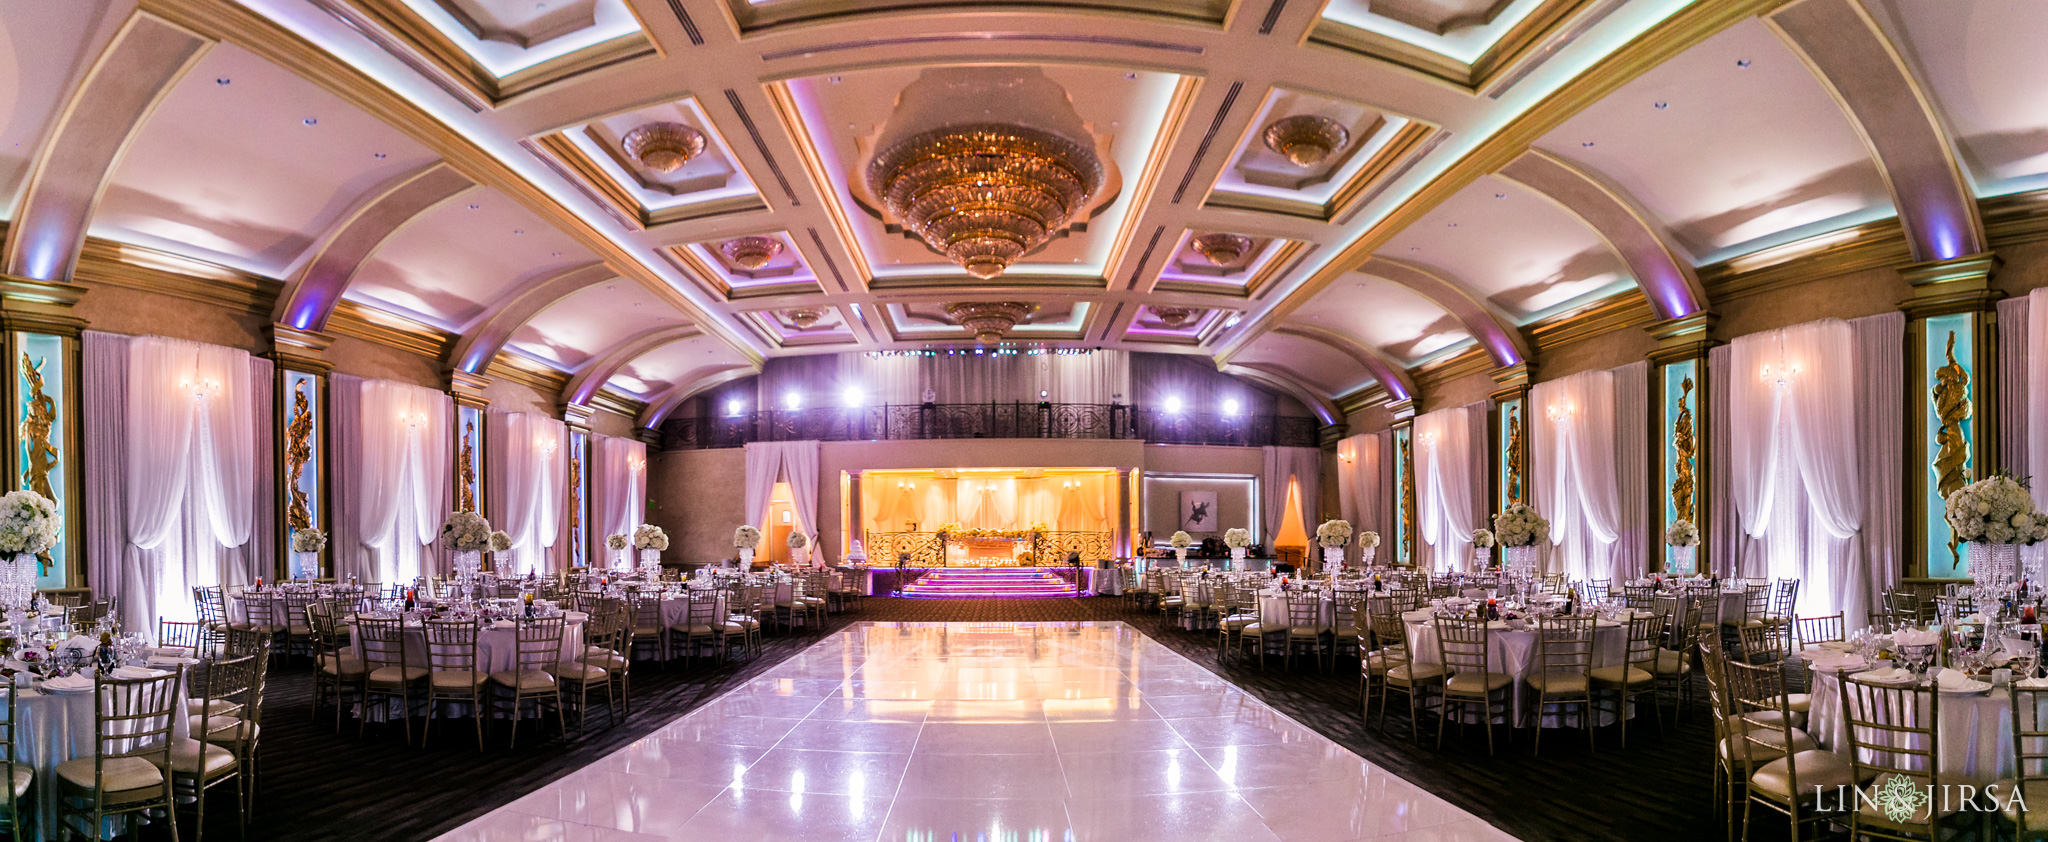 Palladio Banquet Hall Glendale Wedding  Marina  Raef